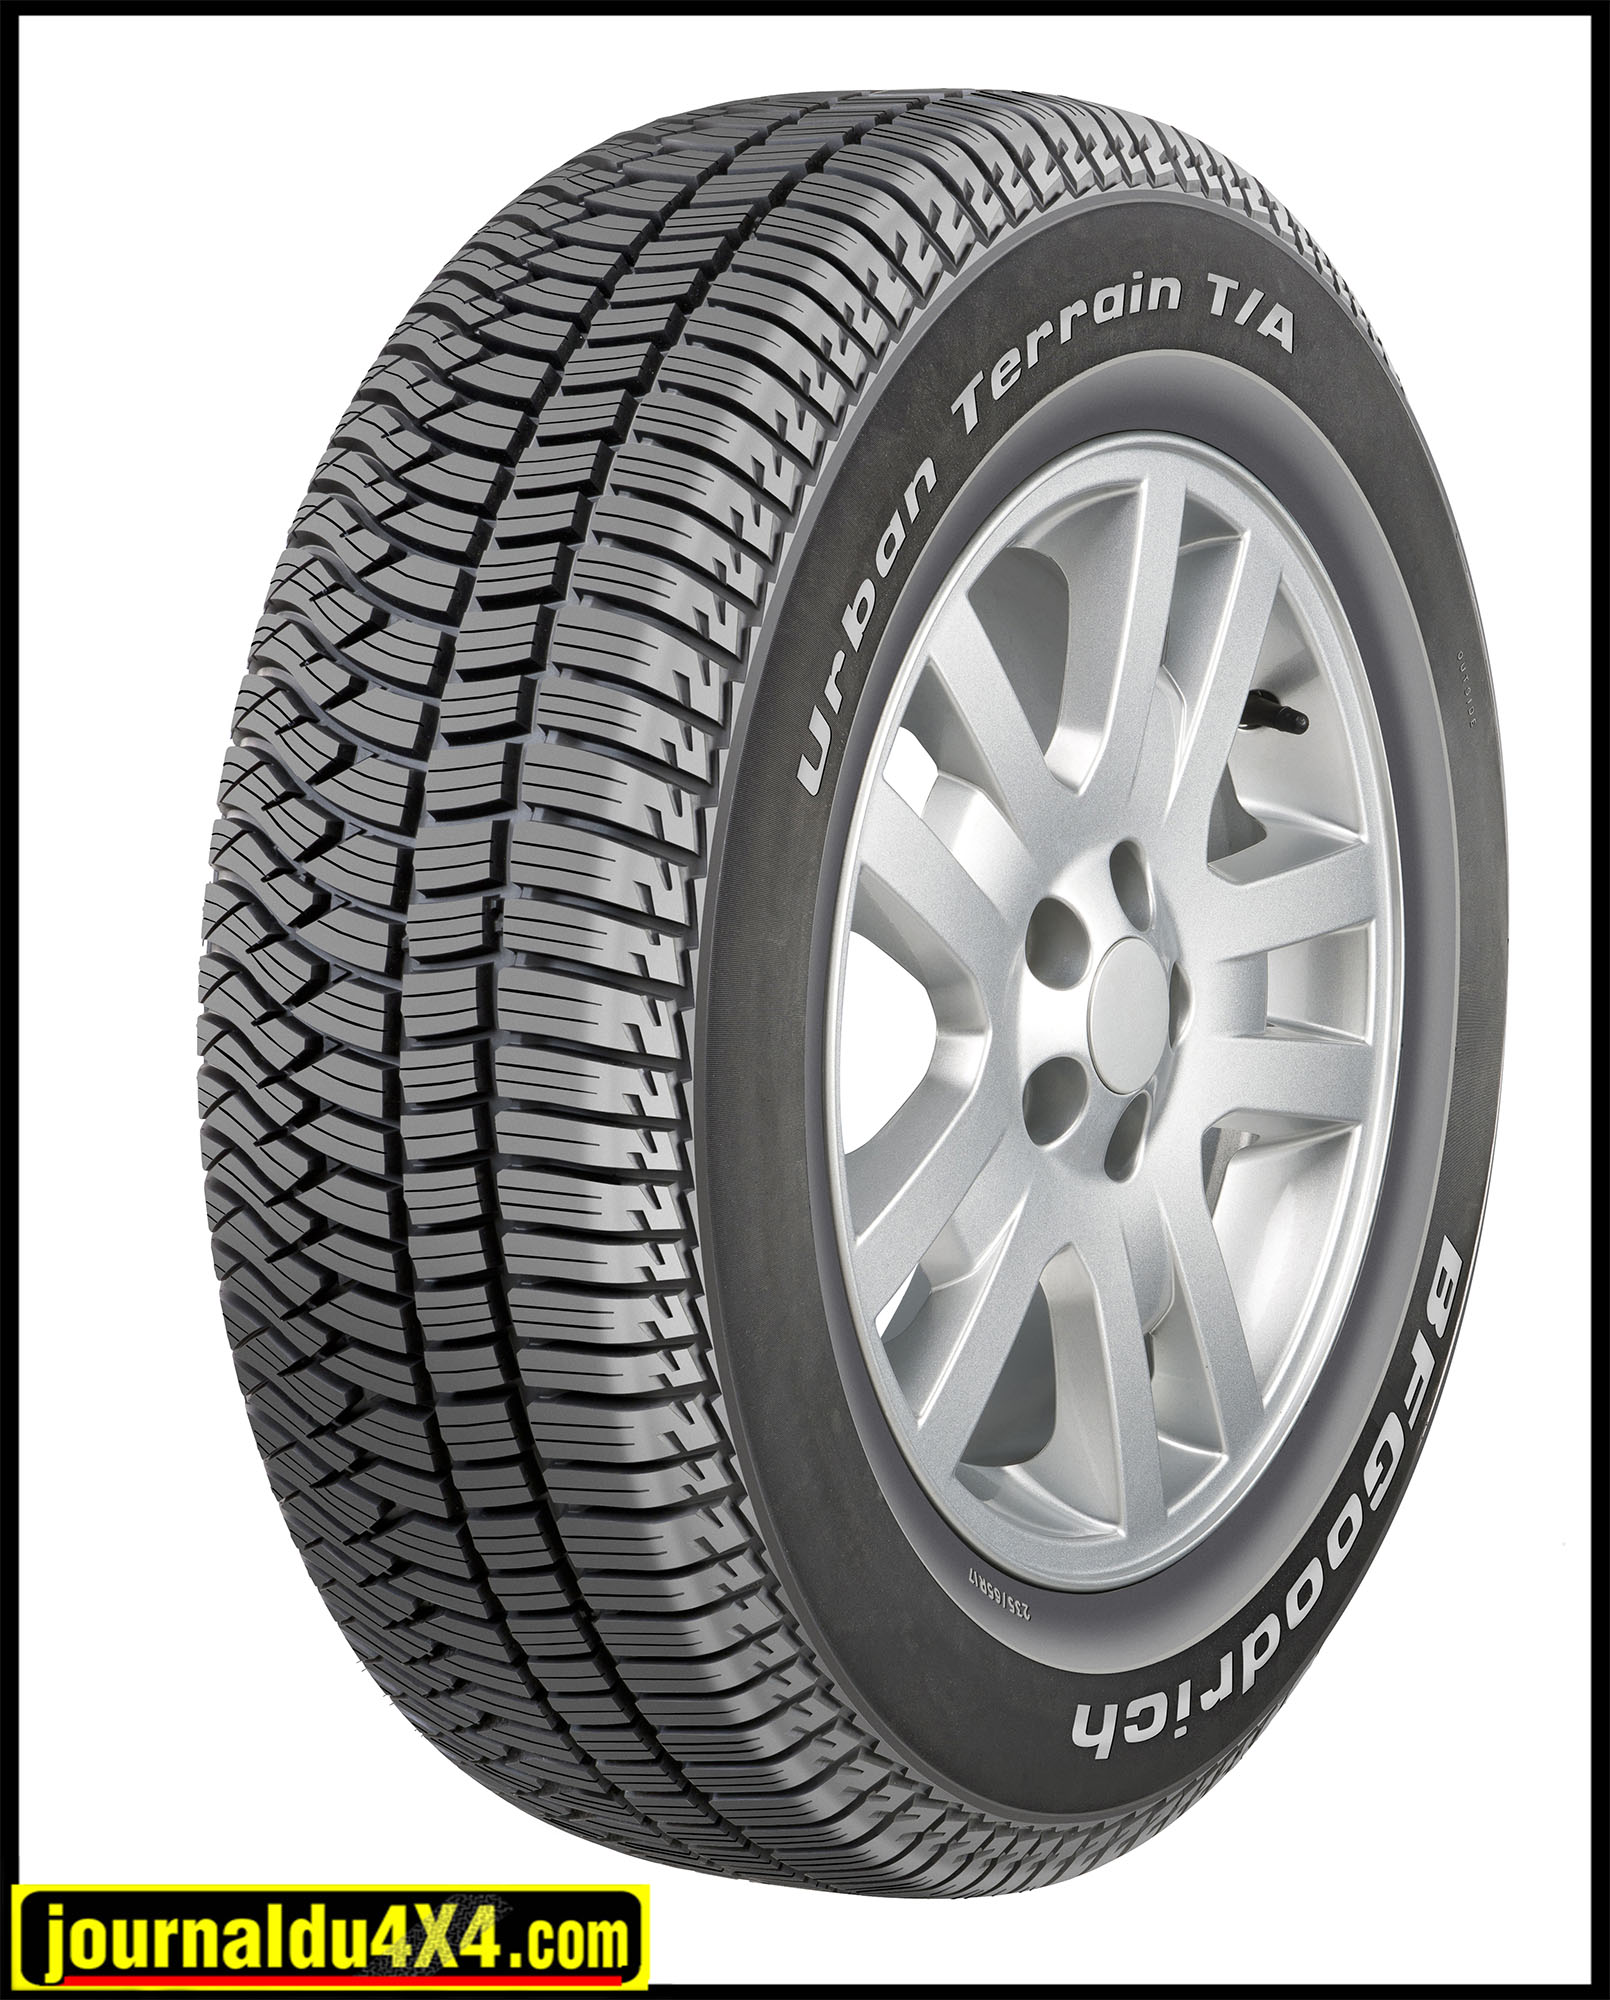 pneu BFGoodrich Urban Terrain T/A SUV Cross Over